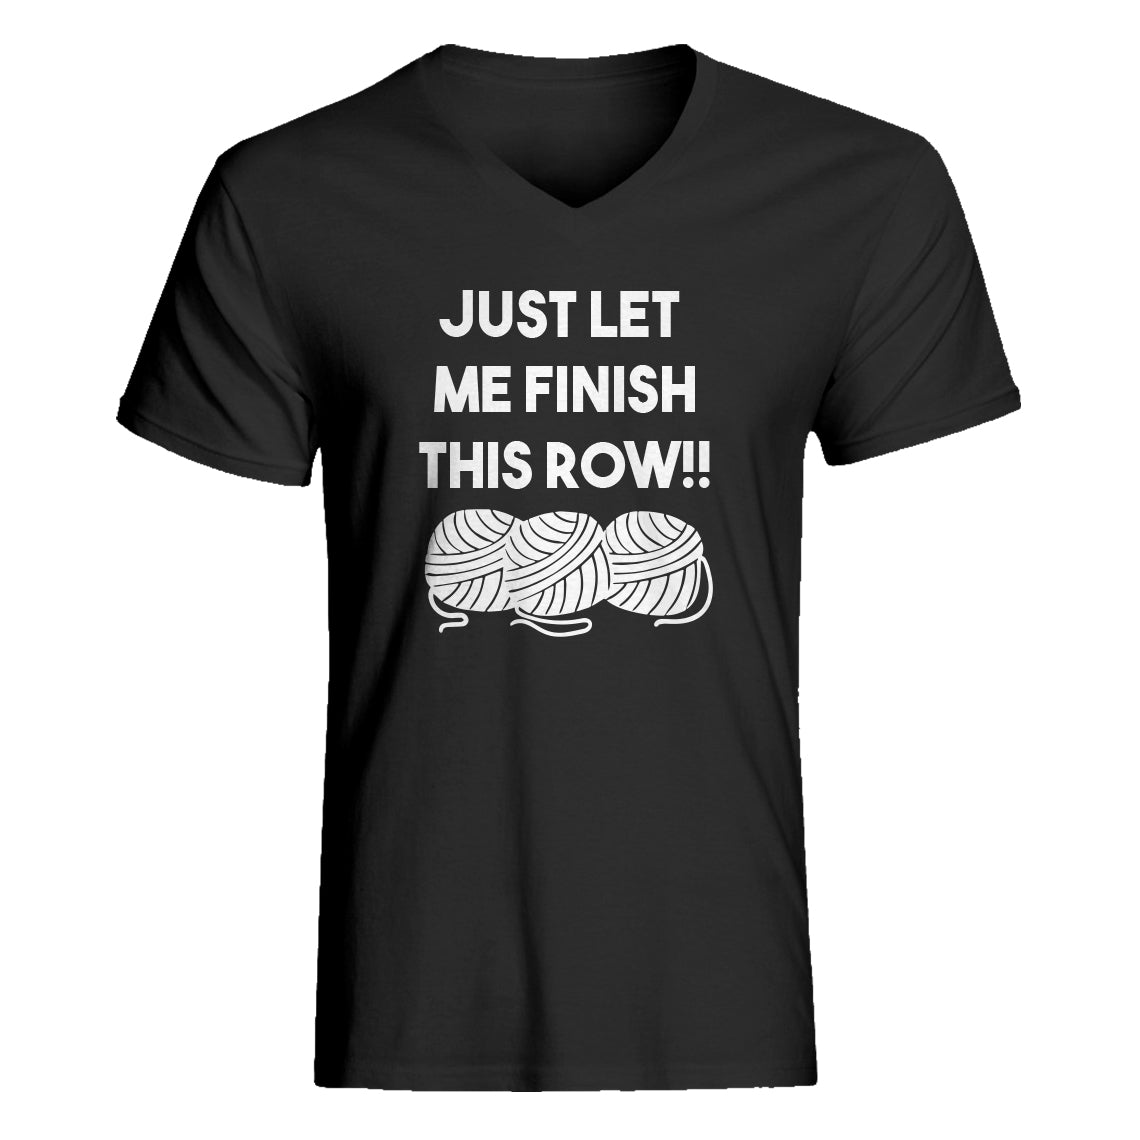 Mens Just Let Me Finish This Row! V-Neck T-shirt